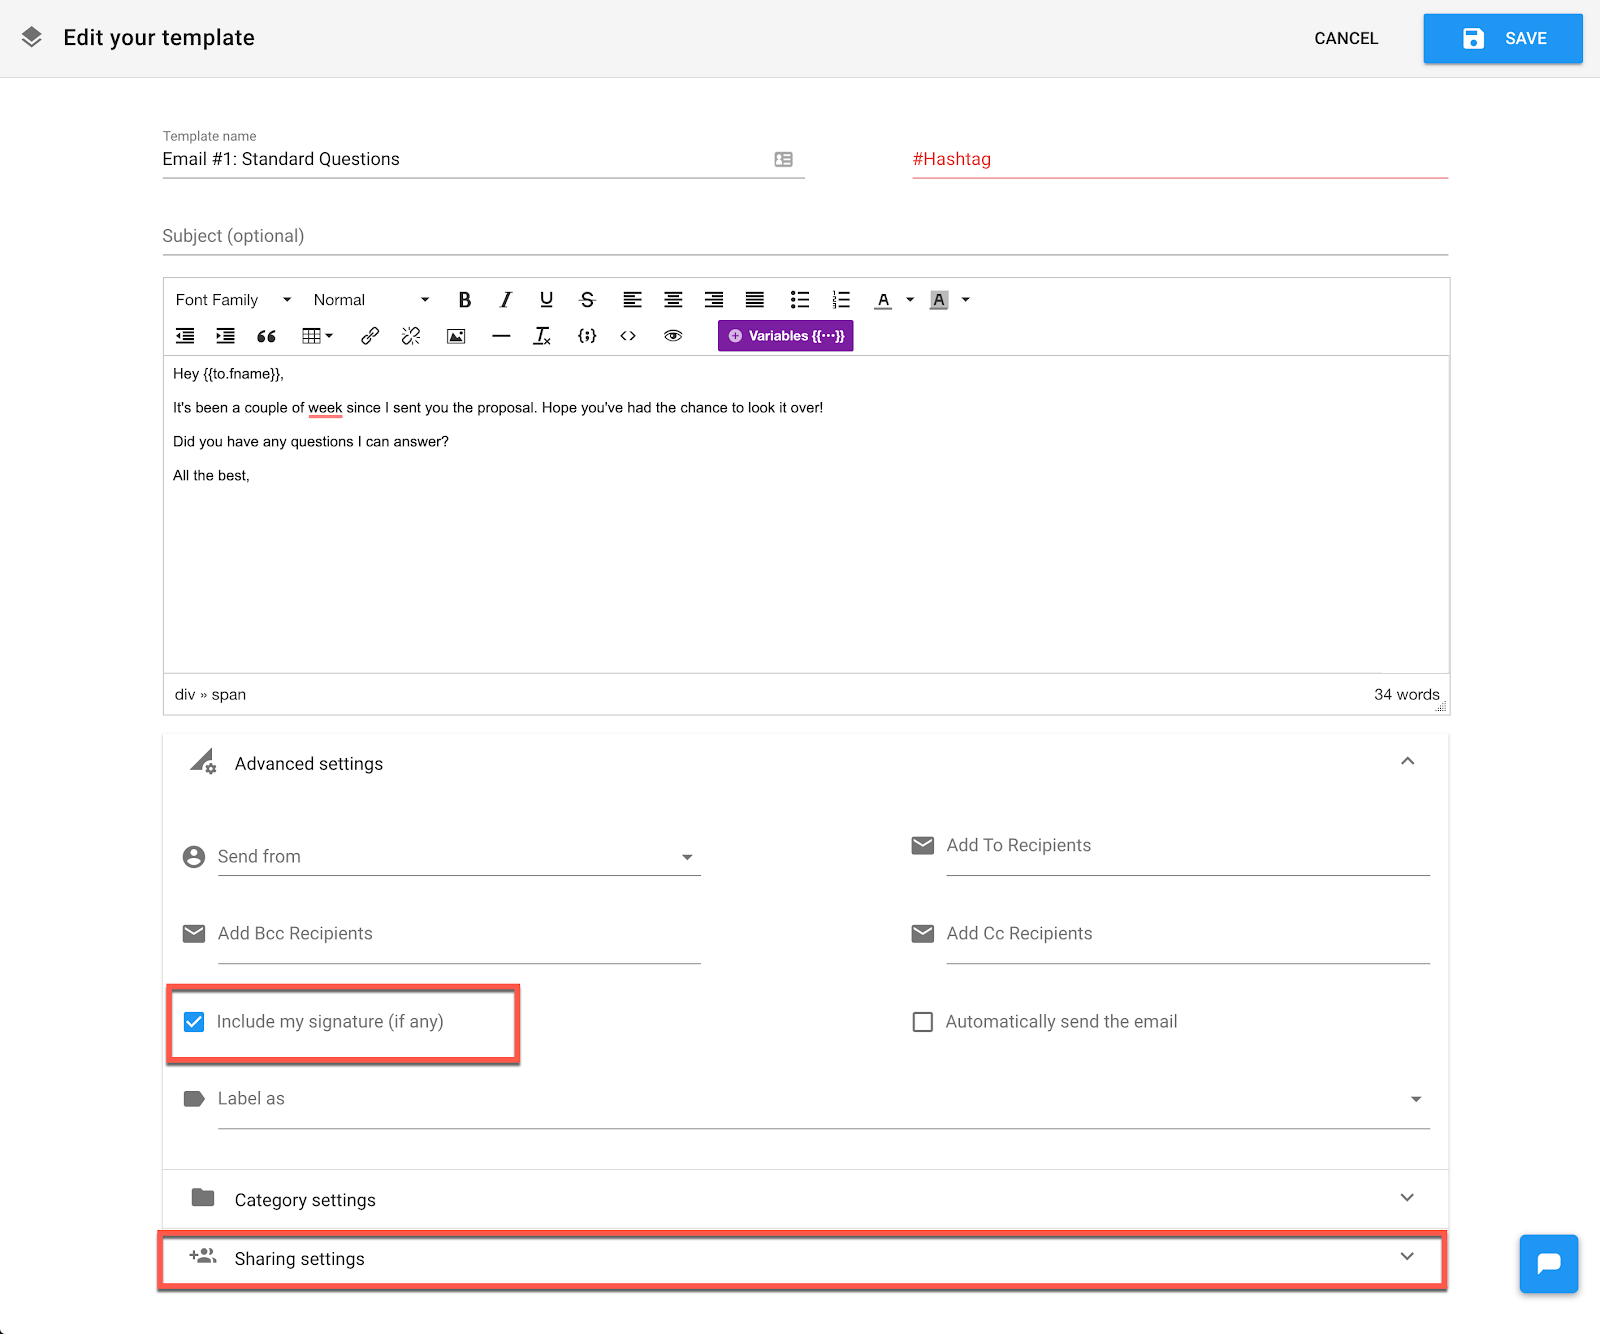 Email Automation: Type the email into the editor.